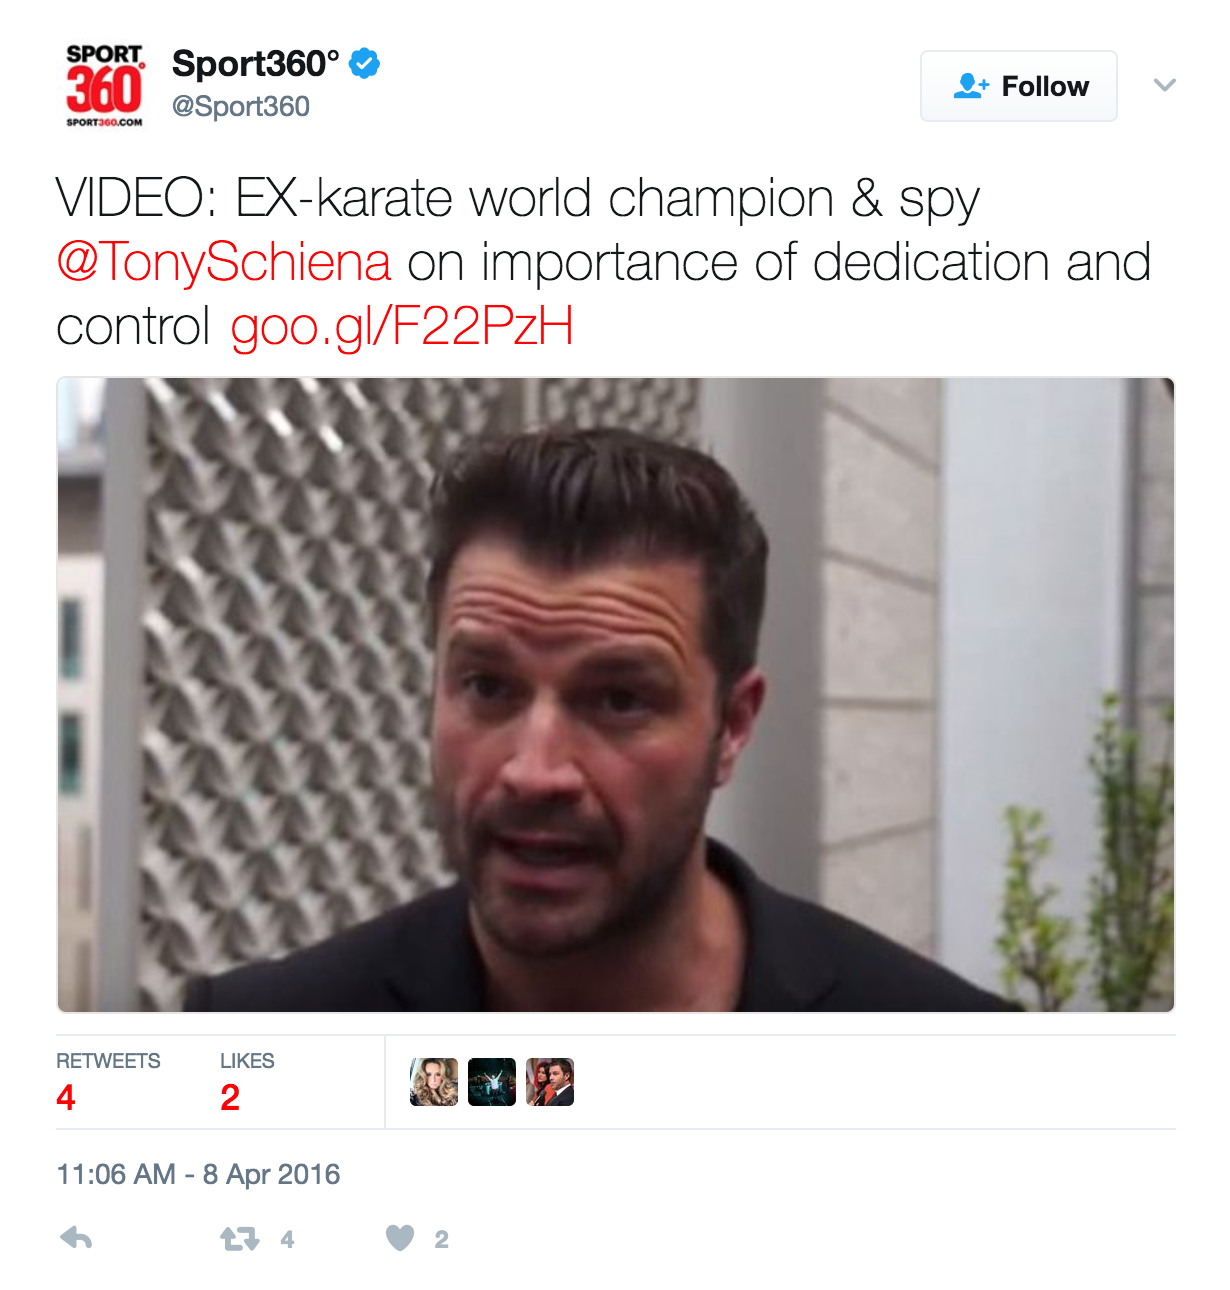 SPORT360 INTERVIEW WITH TONY SCHIENA